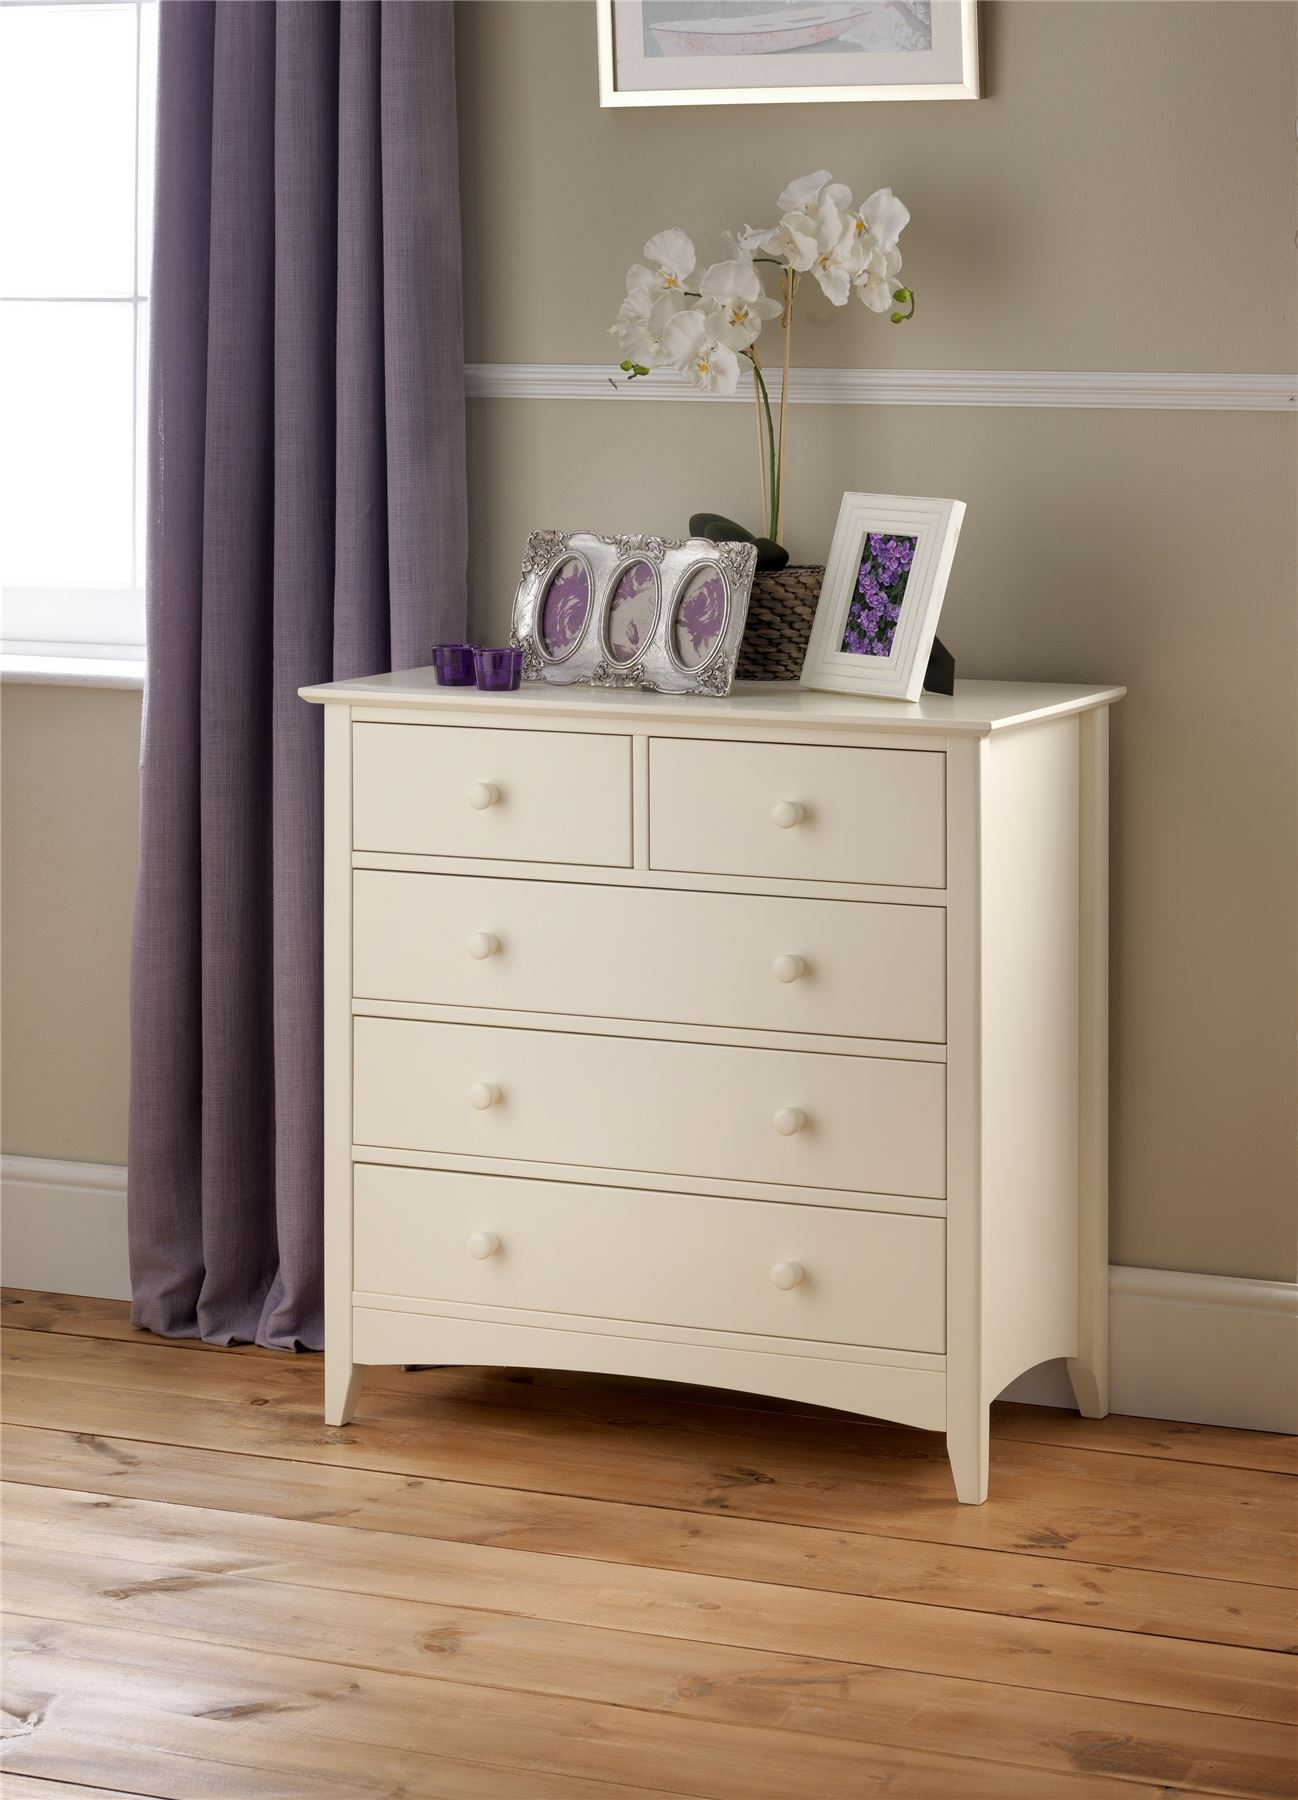 Julian Bowen Cameo Stone White Wood 3+2 Drawer Chest of Drawers